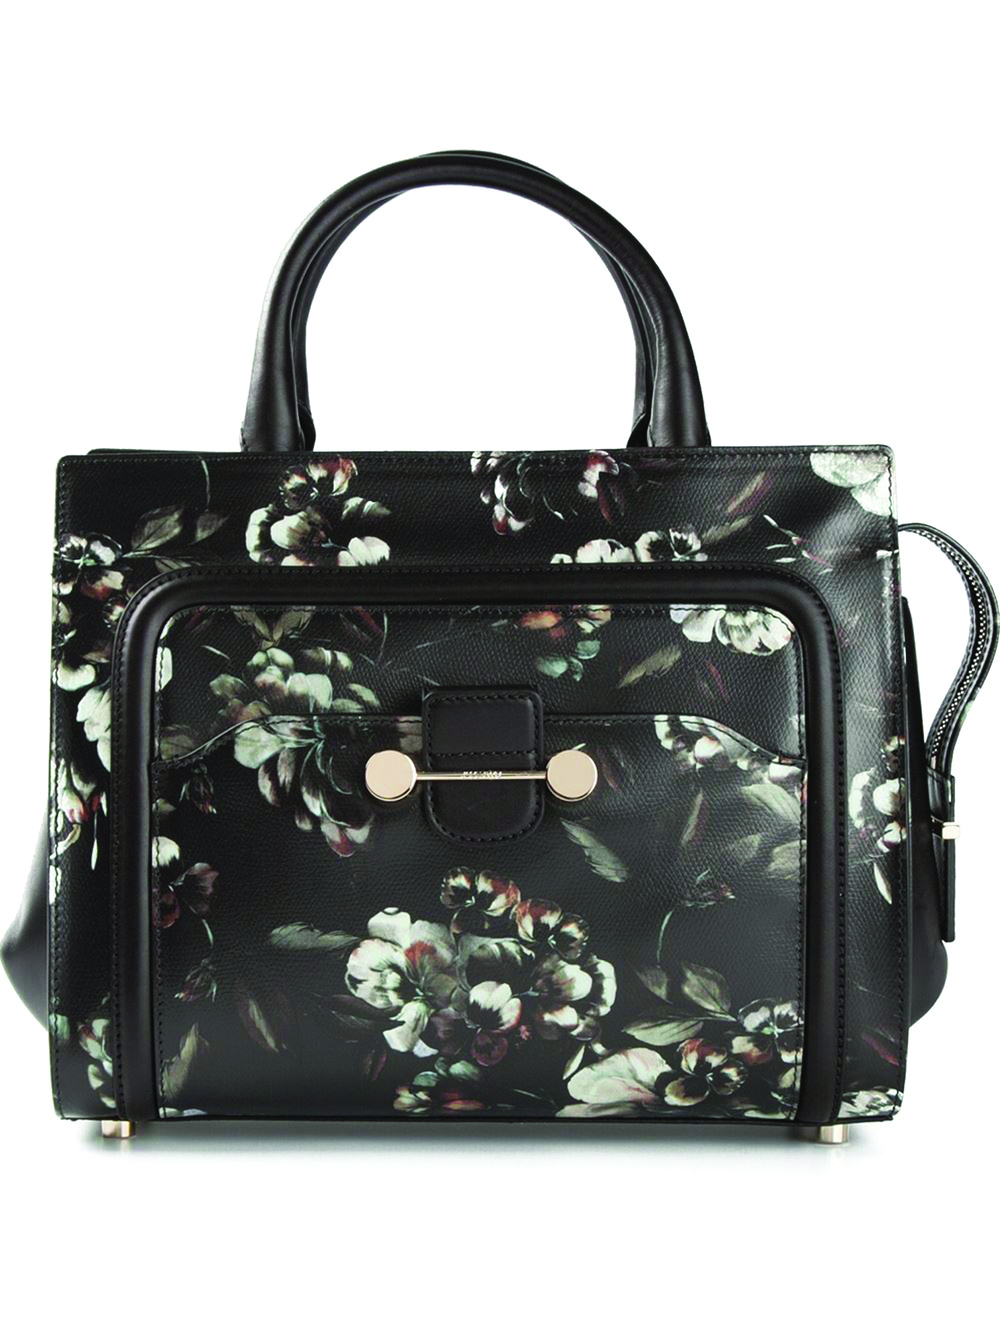 Jason Wu Cross Body Bag. $3,510.78 Jason Wu puts a dark, painterly spin on florals. Gold-toned hardware adds a luxe touch to this leather satchel, with shoulder strap and round handles. At Farfetch.com